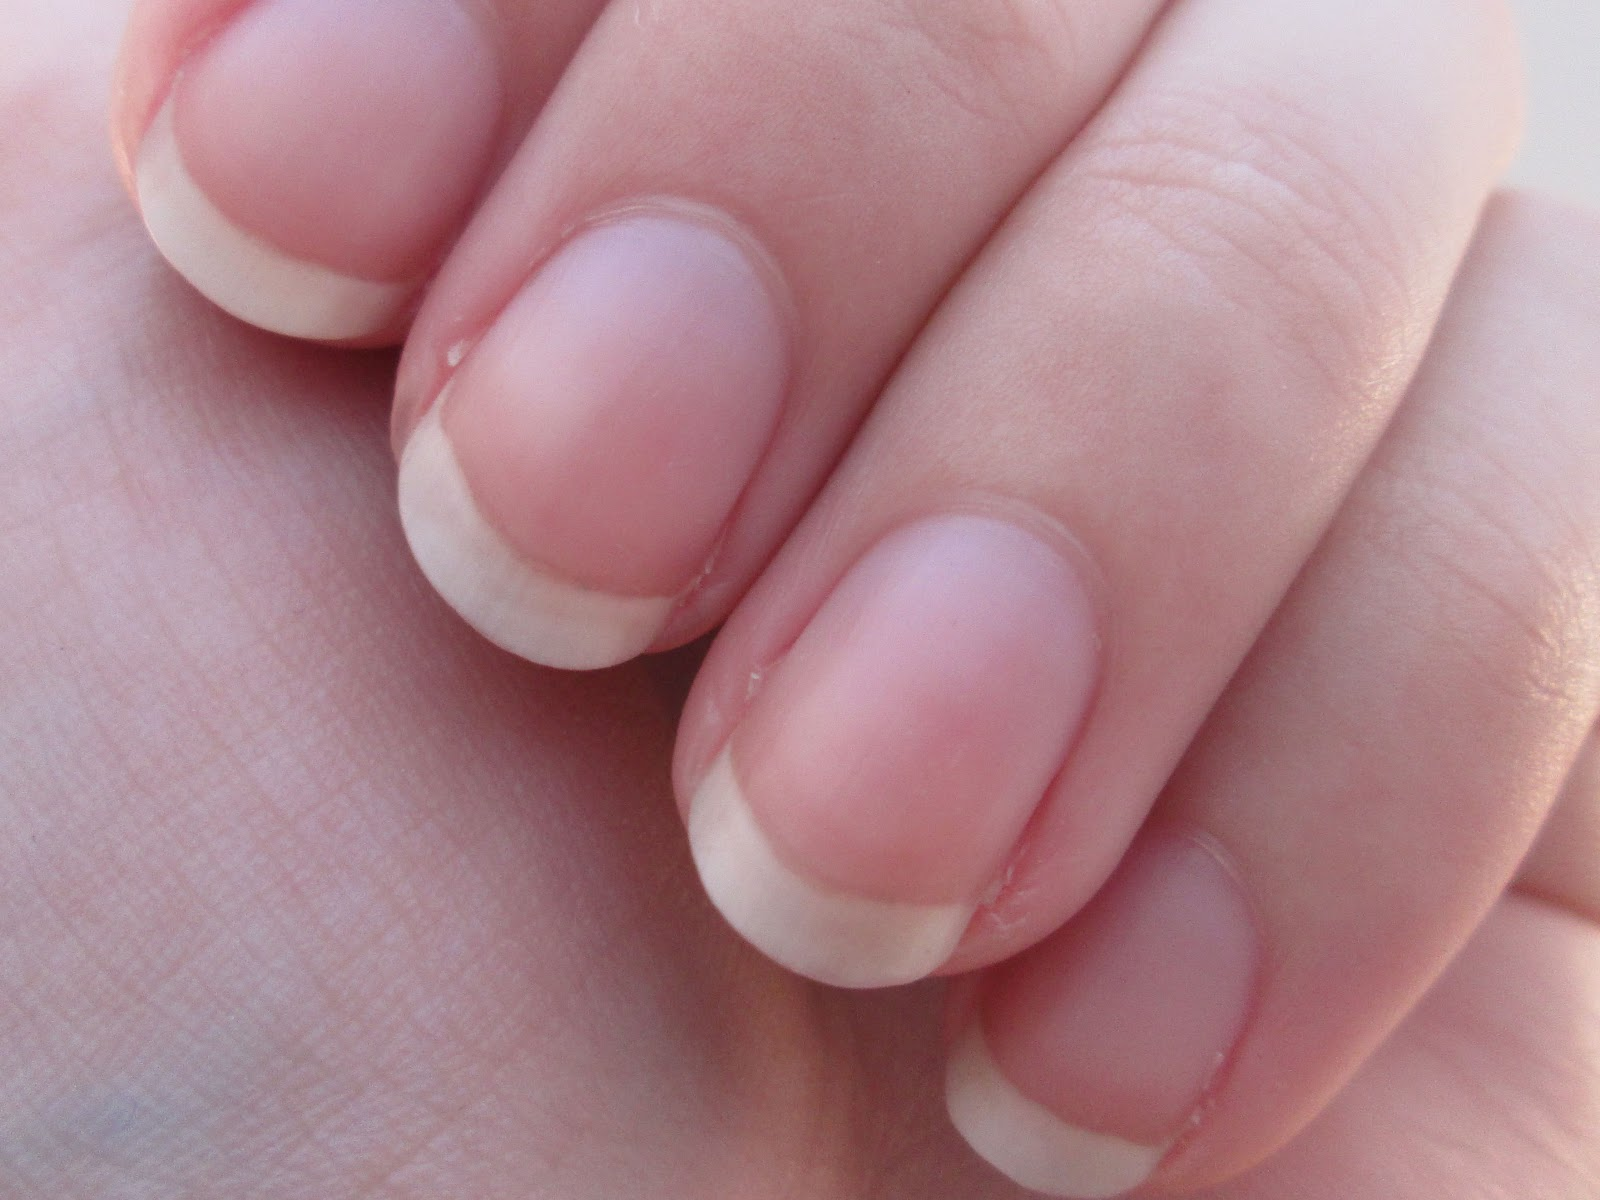 No Moon On The Fingernail Is One Condition What Does This Indicate Are There Ways You Can Have Healthy Fingernails